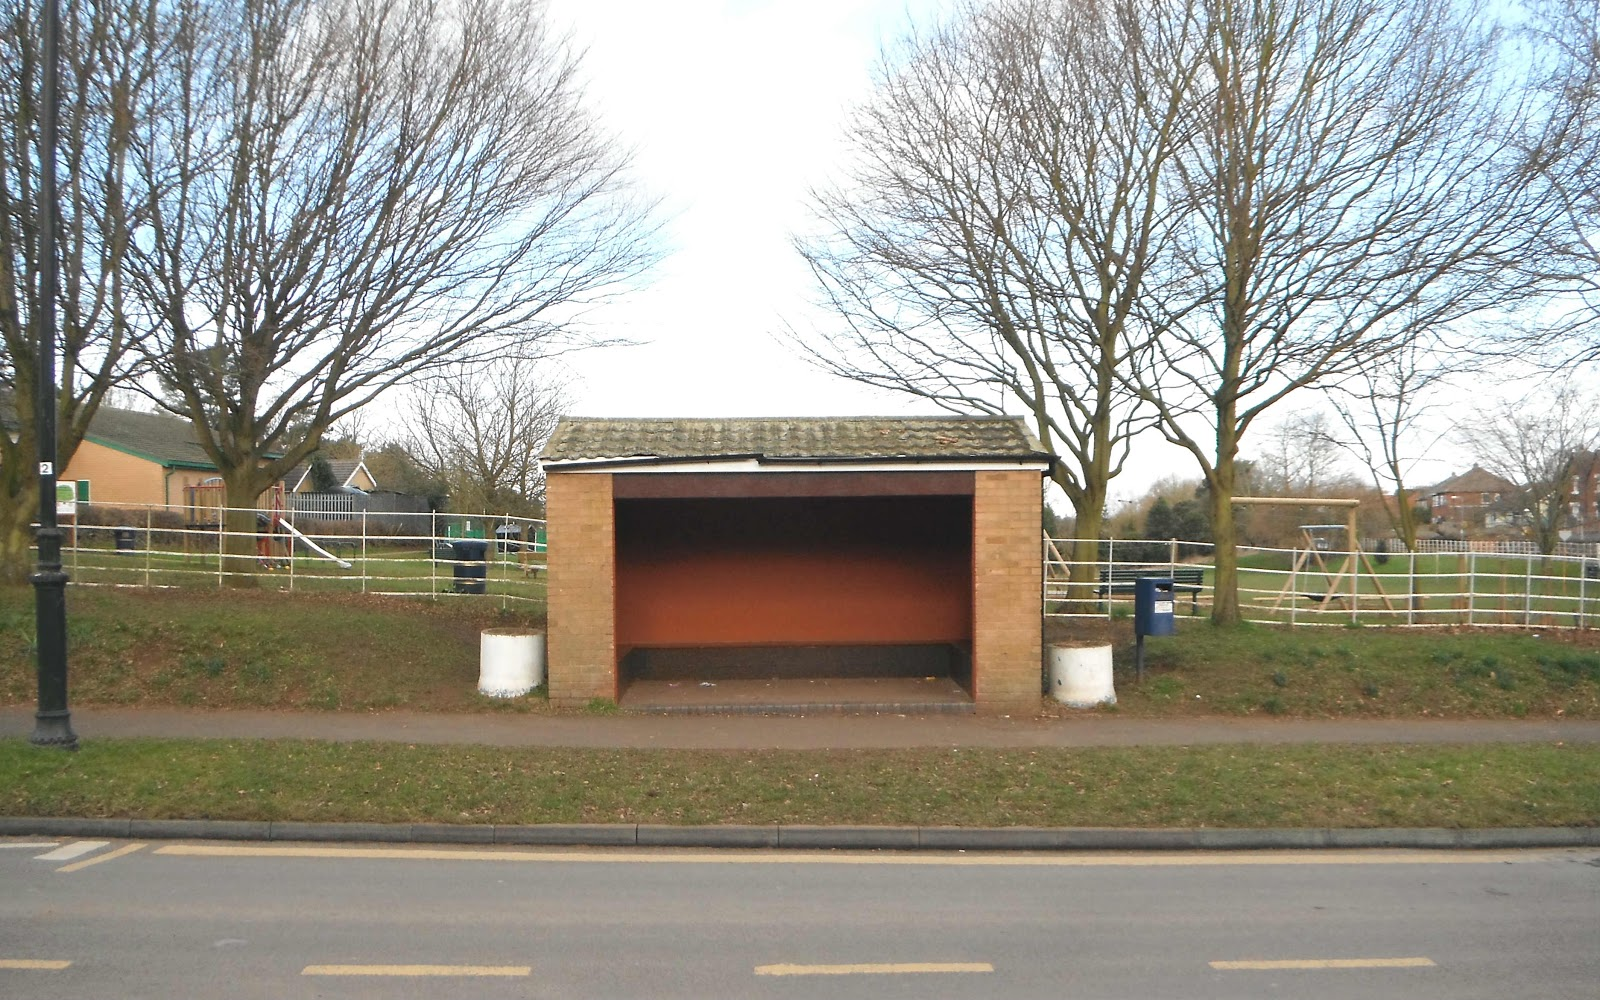 Pattingham bus shelter